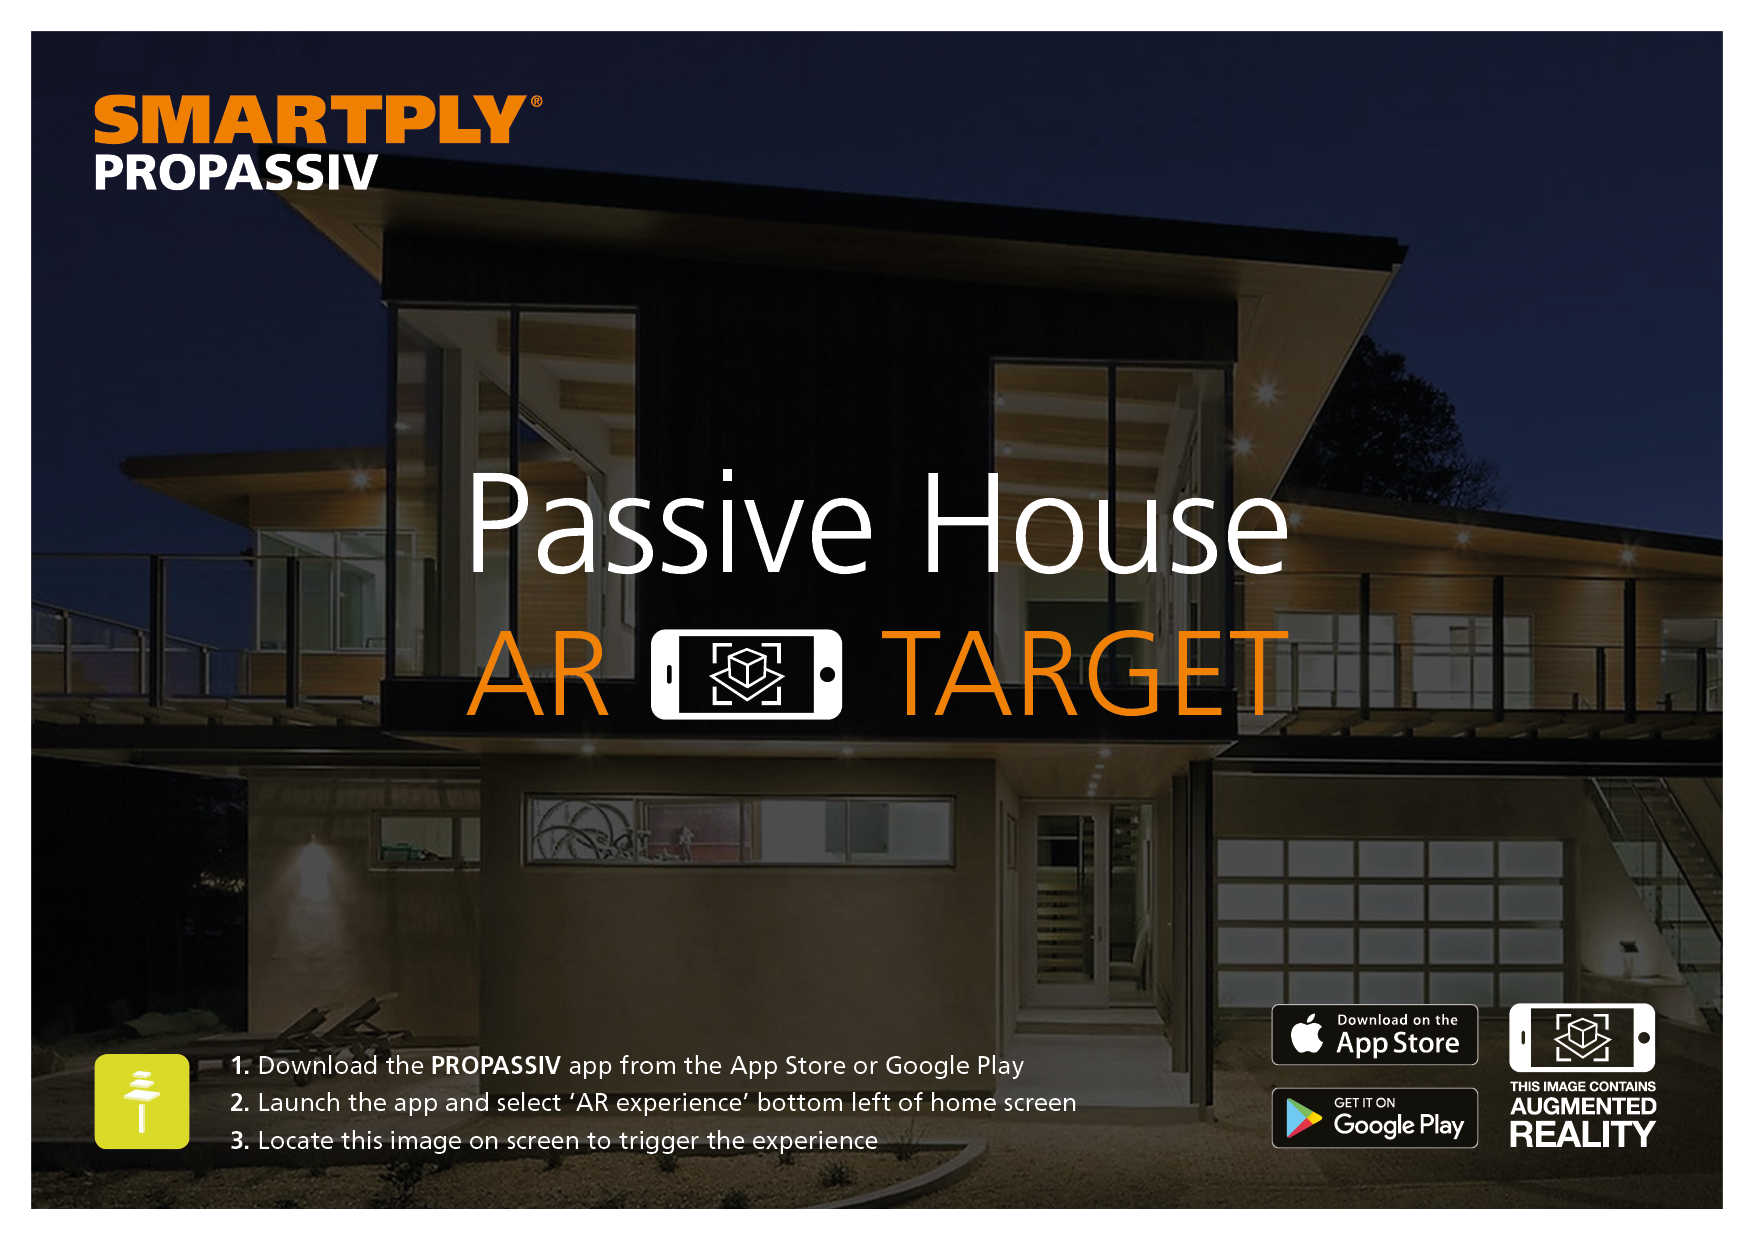 Passive House AR marker